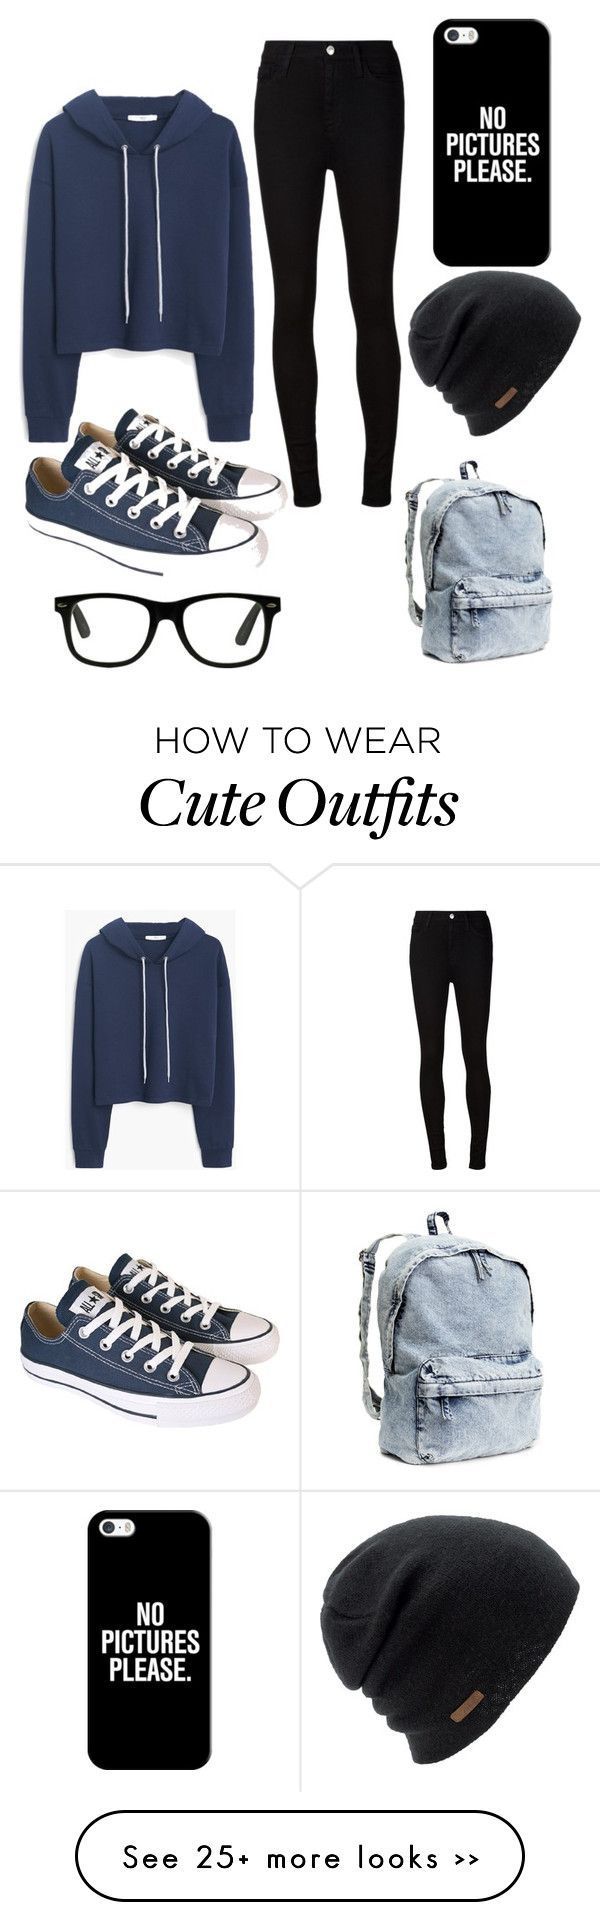 """Casual yet cute outfit for fall."" by liyaalston on Polyvore featuring MANGO, AG…"